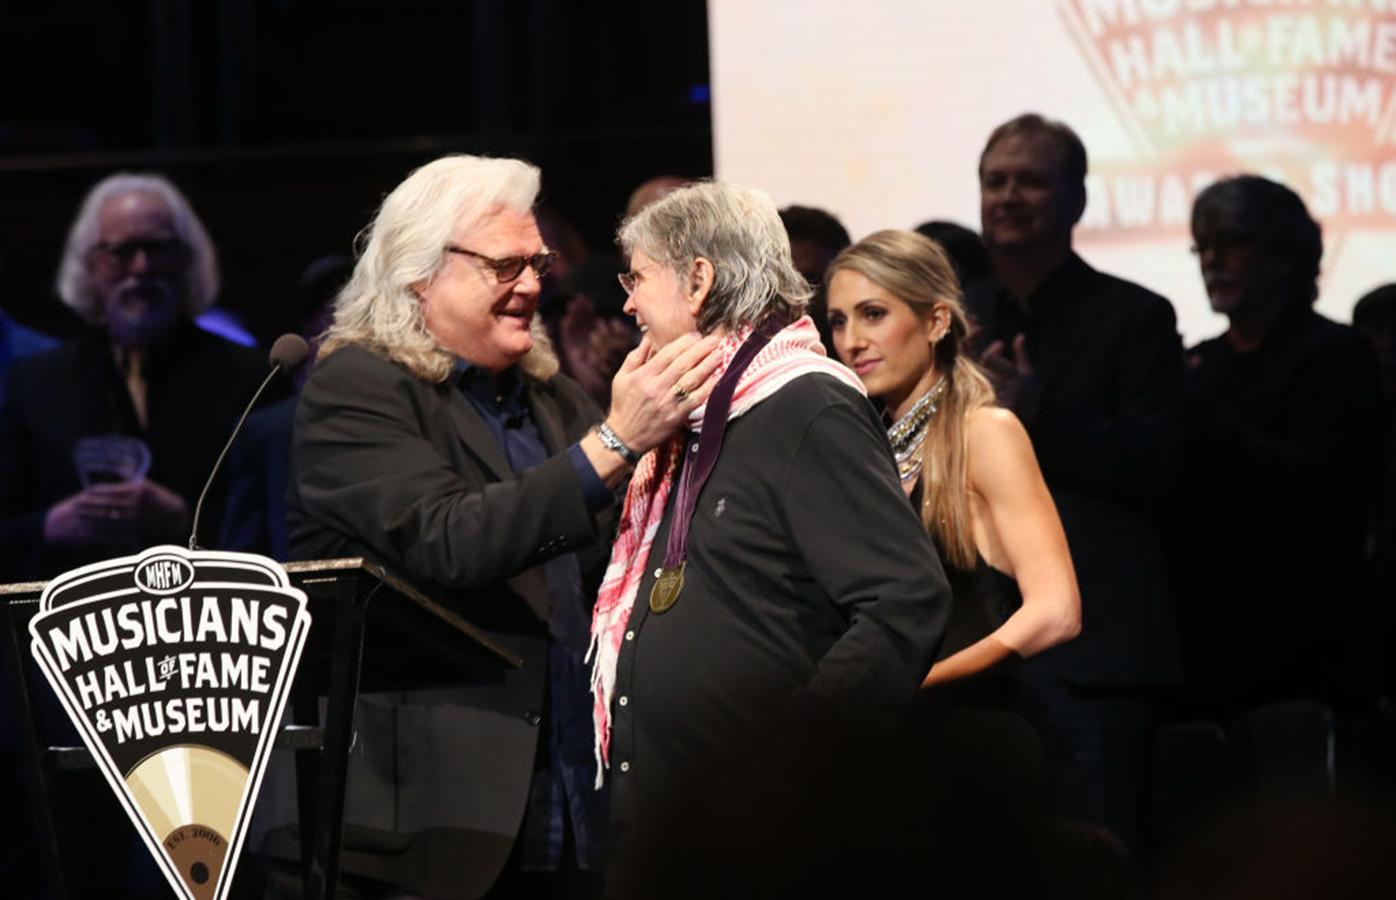 Inductee Don Everly speaks during the 2019 Musicians Hall of Fame Induction Ceremony & Concert.